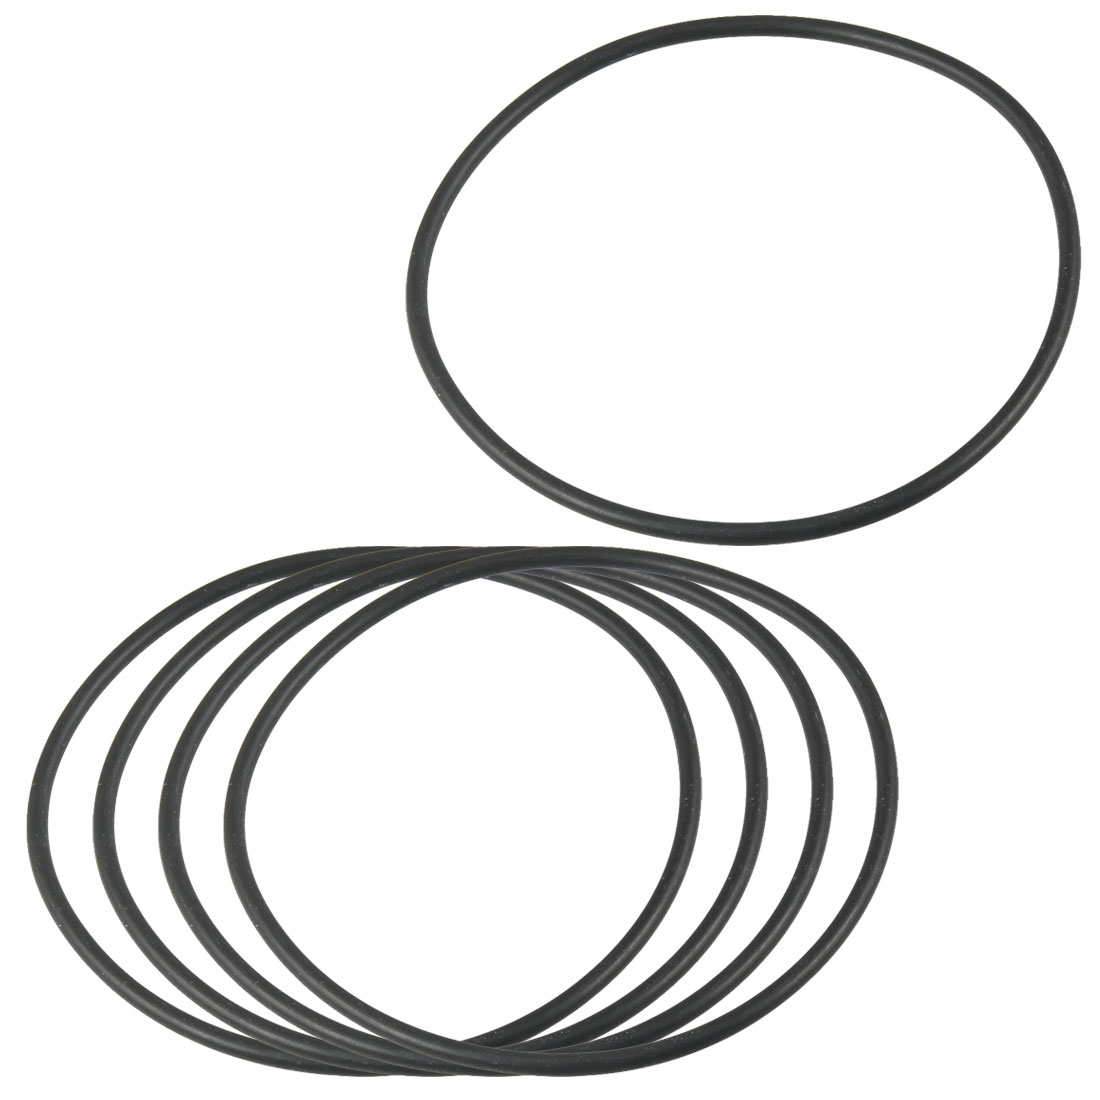 5Pcs Flexible Rubber O Ring Seal Washer Gasket Black 125mm x 2.4mm